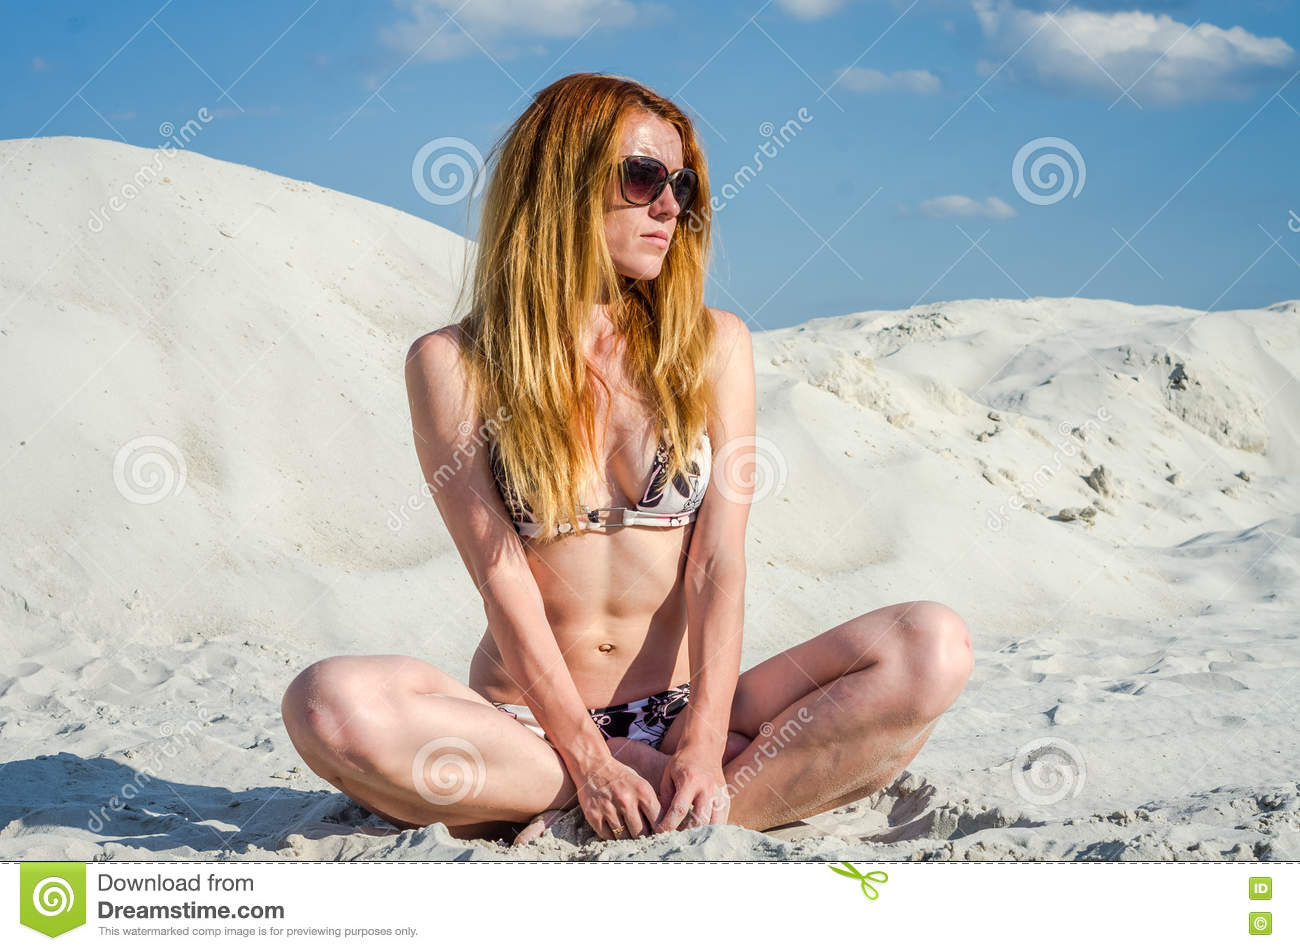 Sexy girl nudist beach